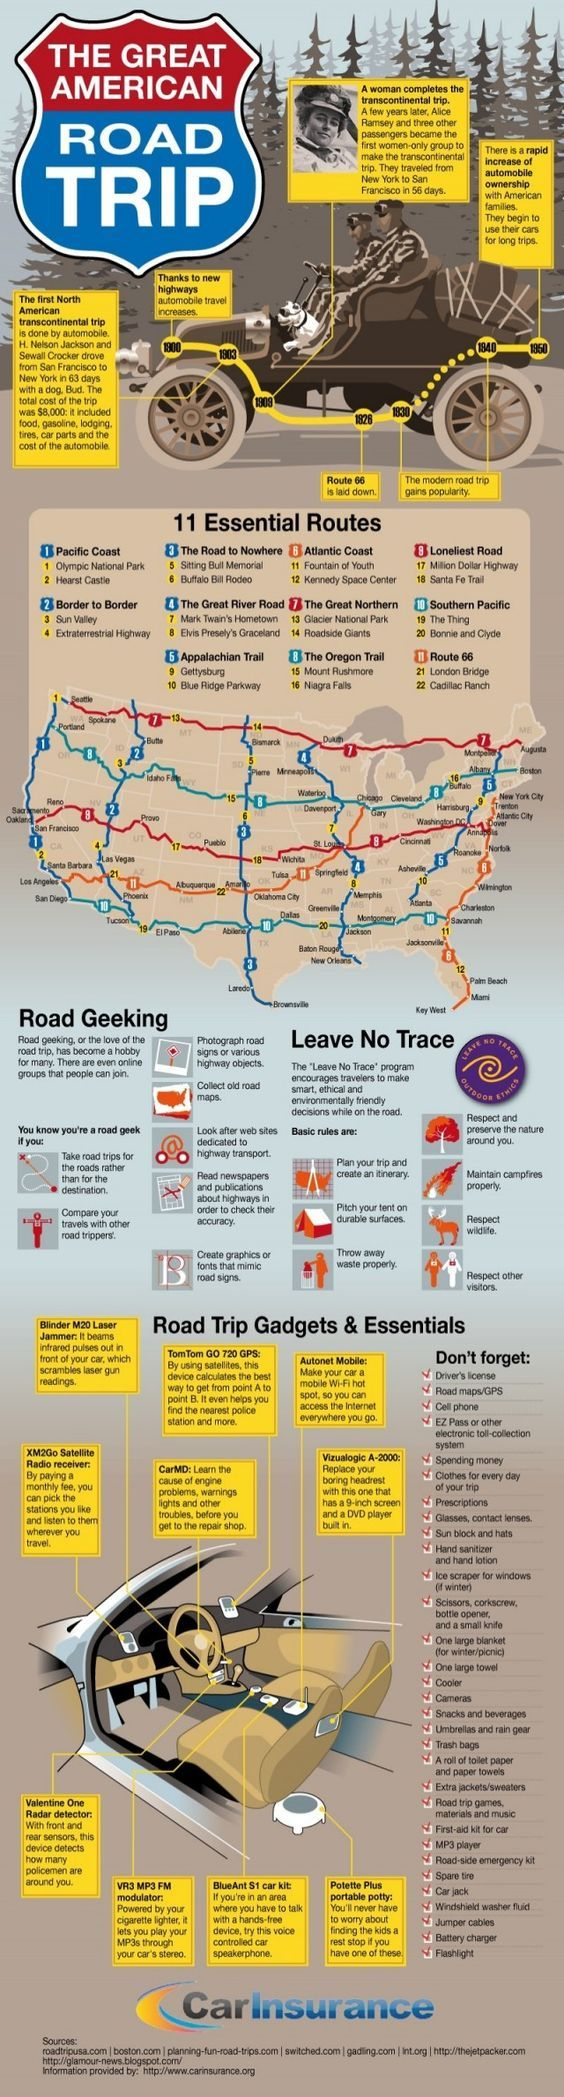 Roadtrip across America: 11 essential road trip routes + tips & facts: